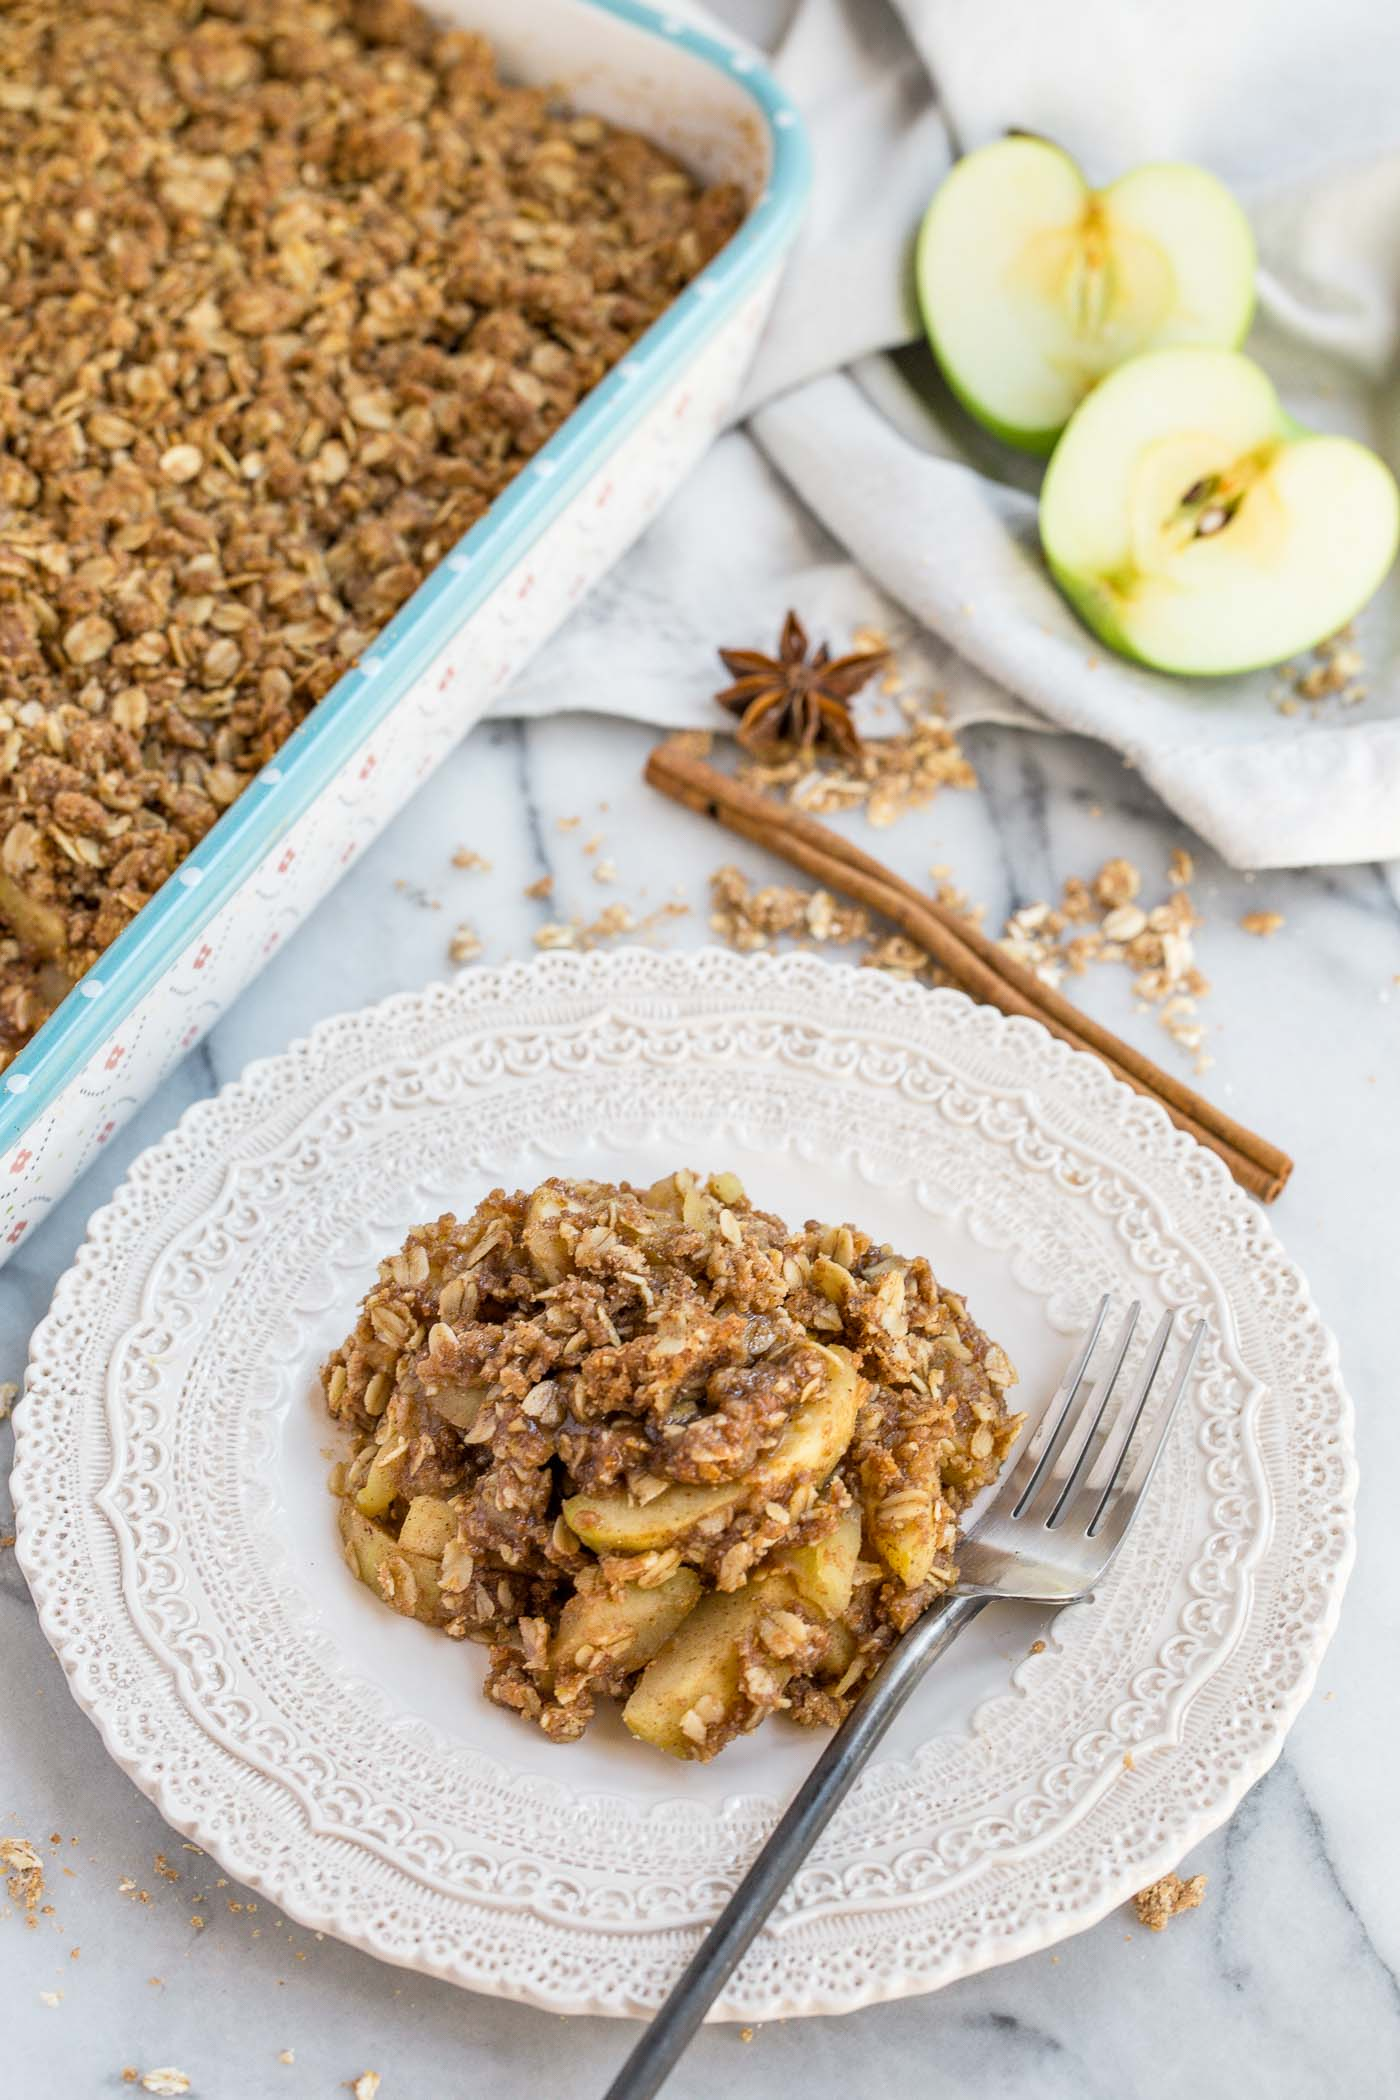 a classic apple crisp updated with the warm flavors of chai, this chai spiced apple crisp is loaded with chai flavor! crisp granny smith apples tossed in a chai spice blend of cinnamon, cardamom, nutmeg, ginger & allspice & baked under a generous layer of homemade crisp. the perfect cozy fall dessert to celebrate all things autumn (especially served warm with a scoop of vanilla ice cream…). #playswellwithbutter #chaispice #applecrisp #chaiapplecrisp #fallbaking #applerecipes